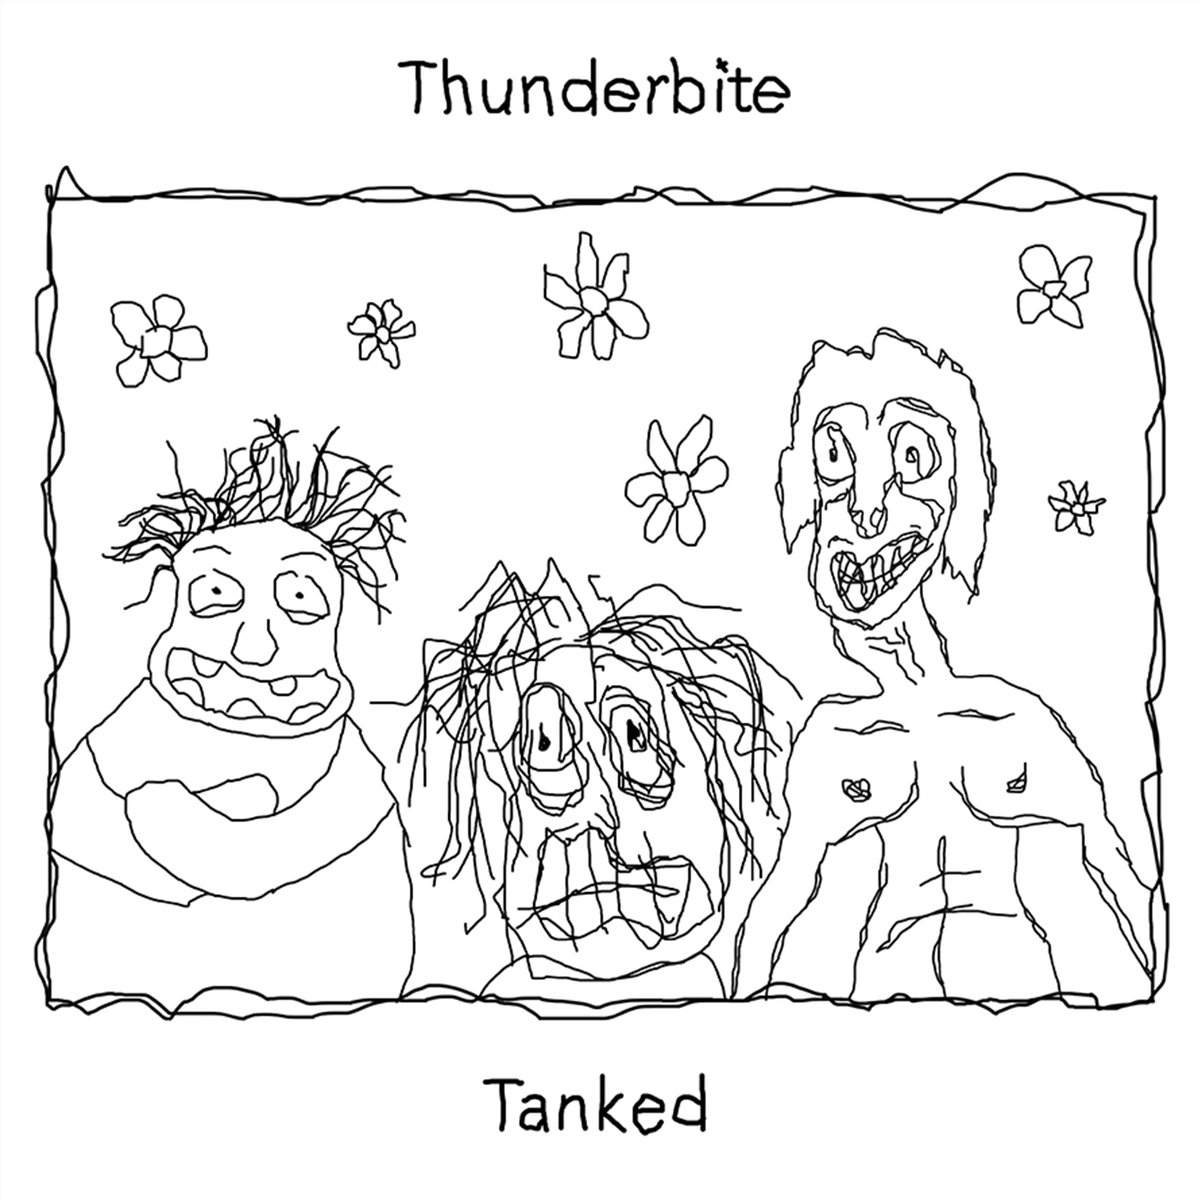 1200x1200 Lake Song Thunderbite